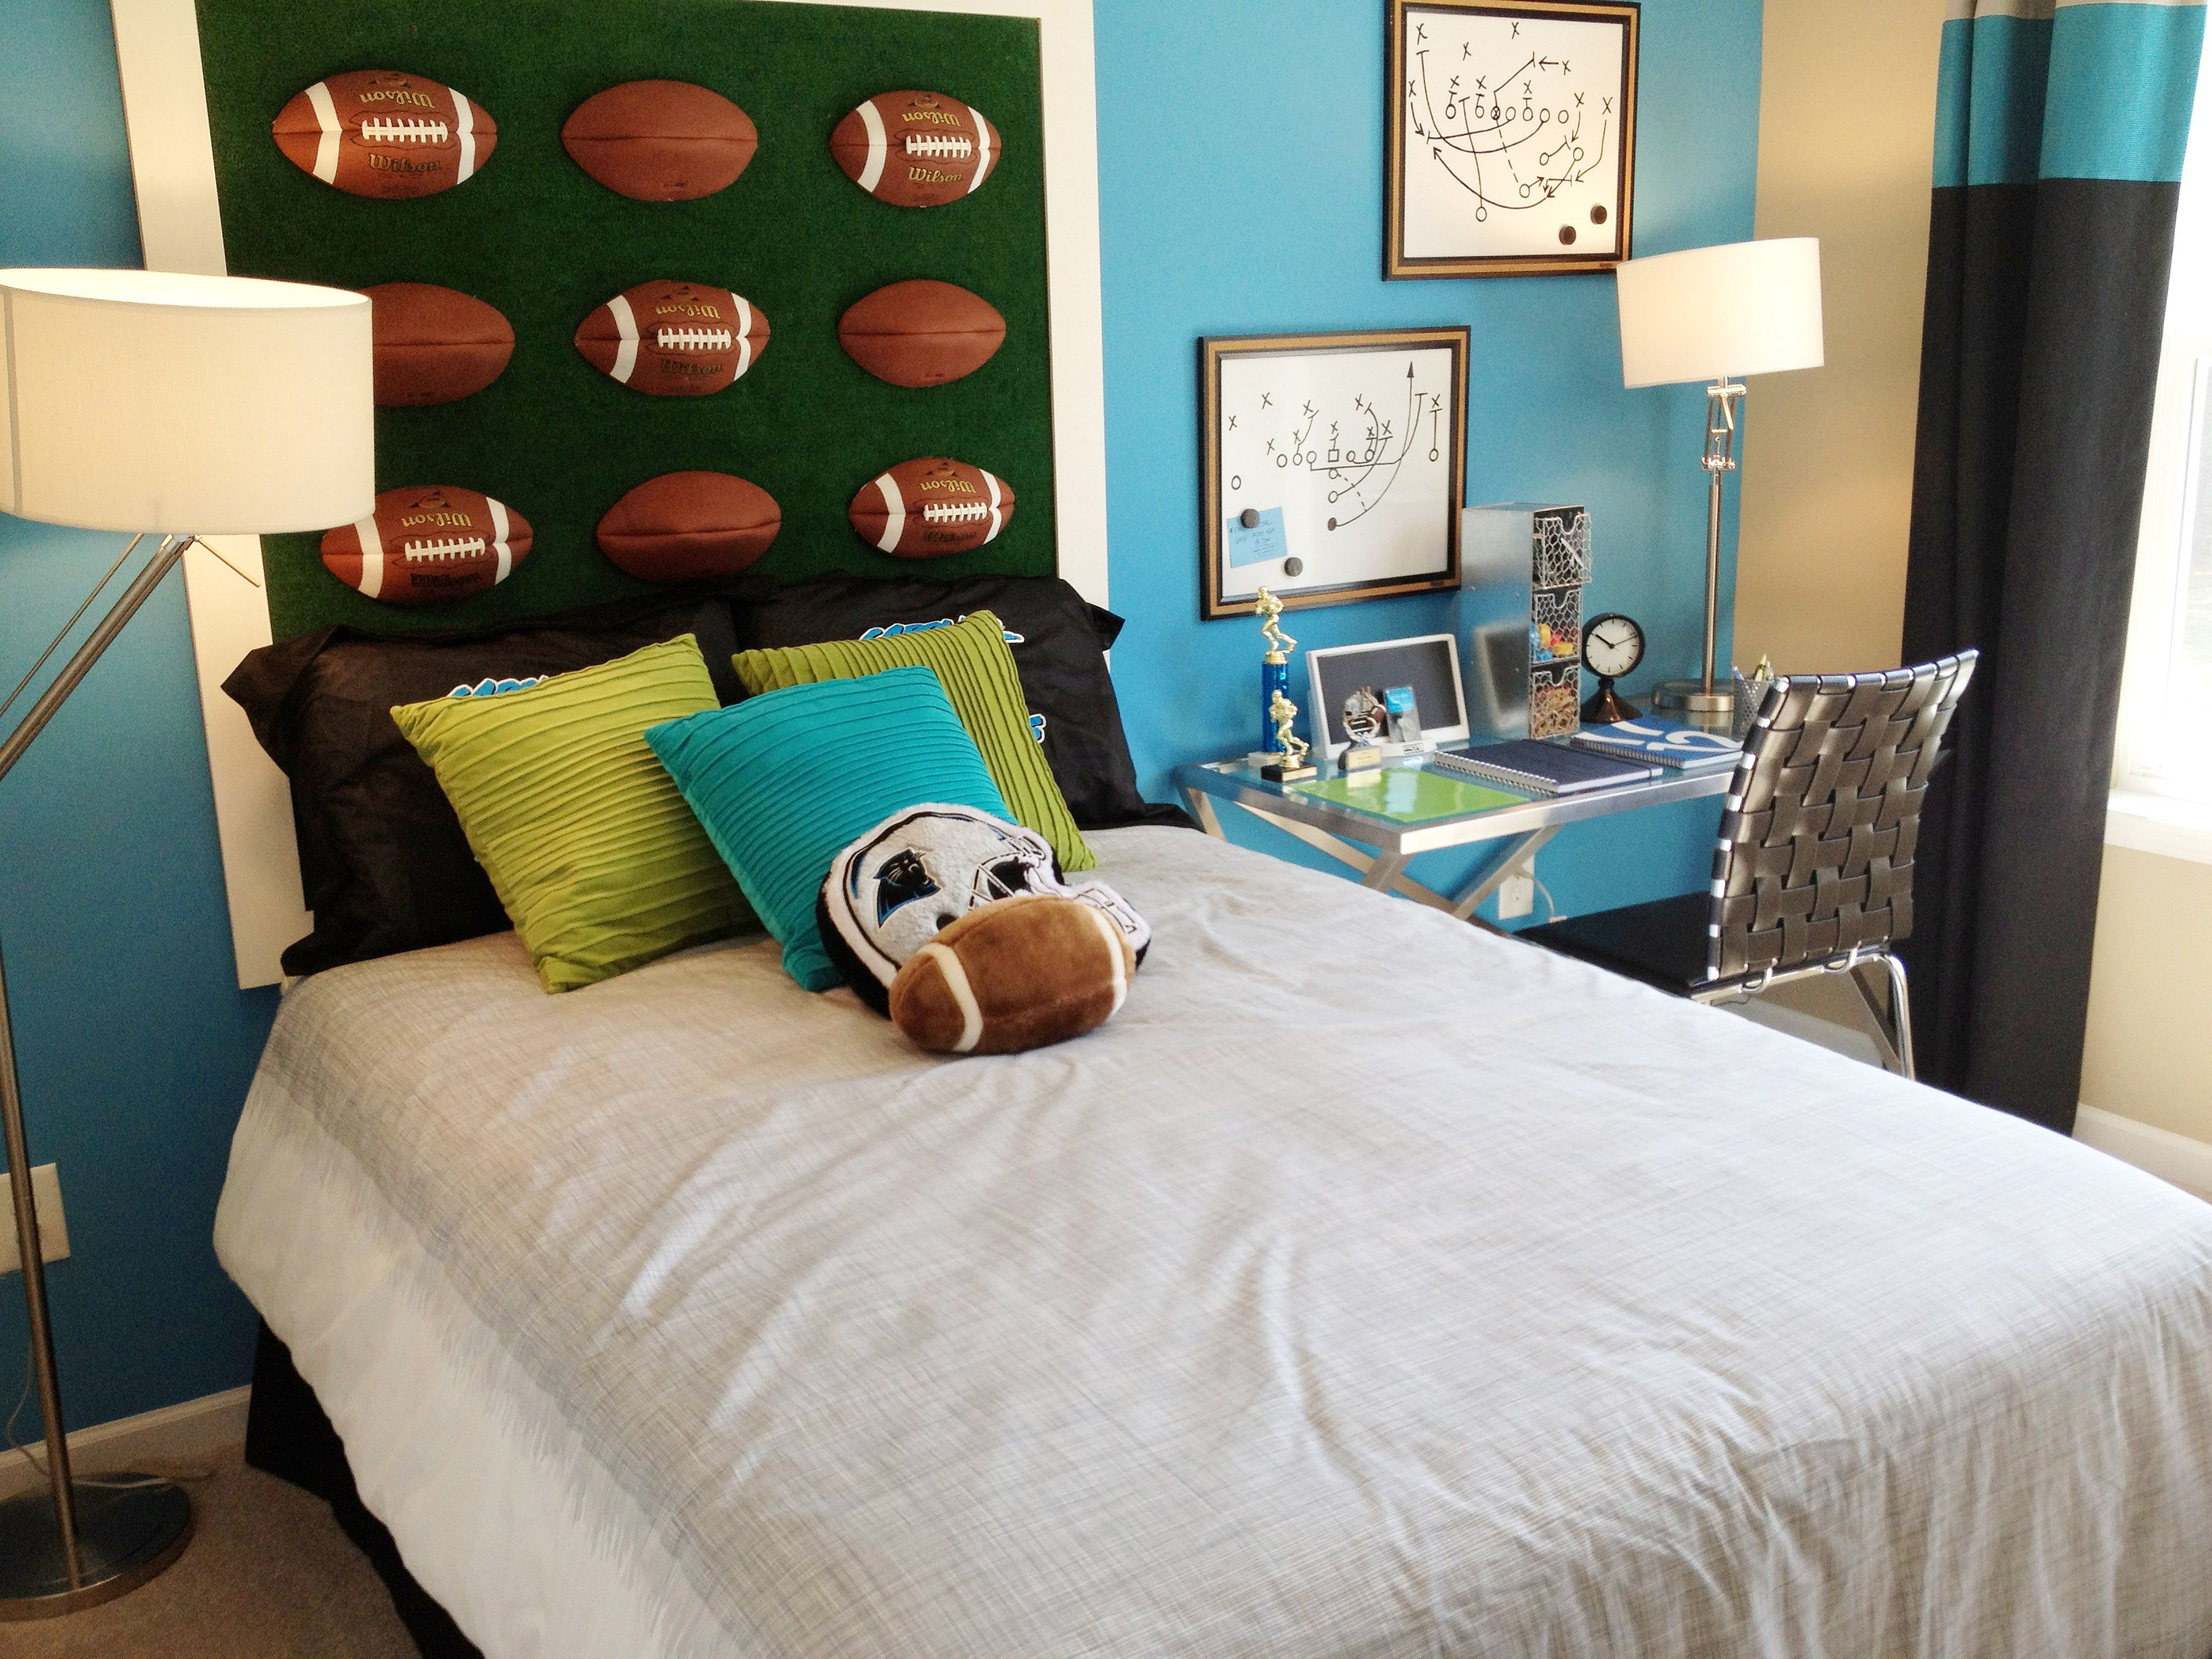 Cut Foot In Half And Place On Artificial Gr To Make This Creative Headboard For Your Football Fan S Bedroom I Also Like The Plays A Magnetic